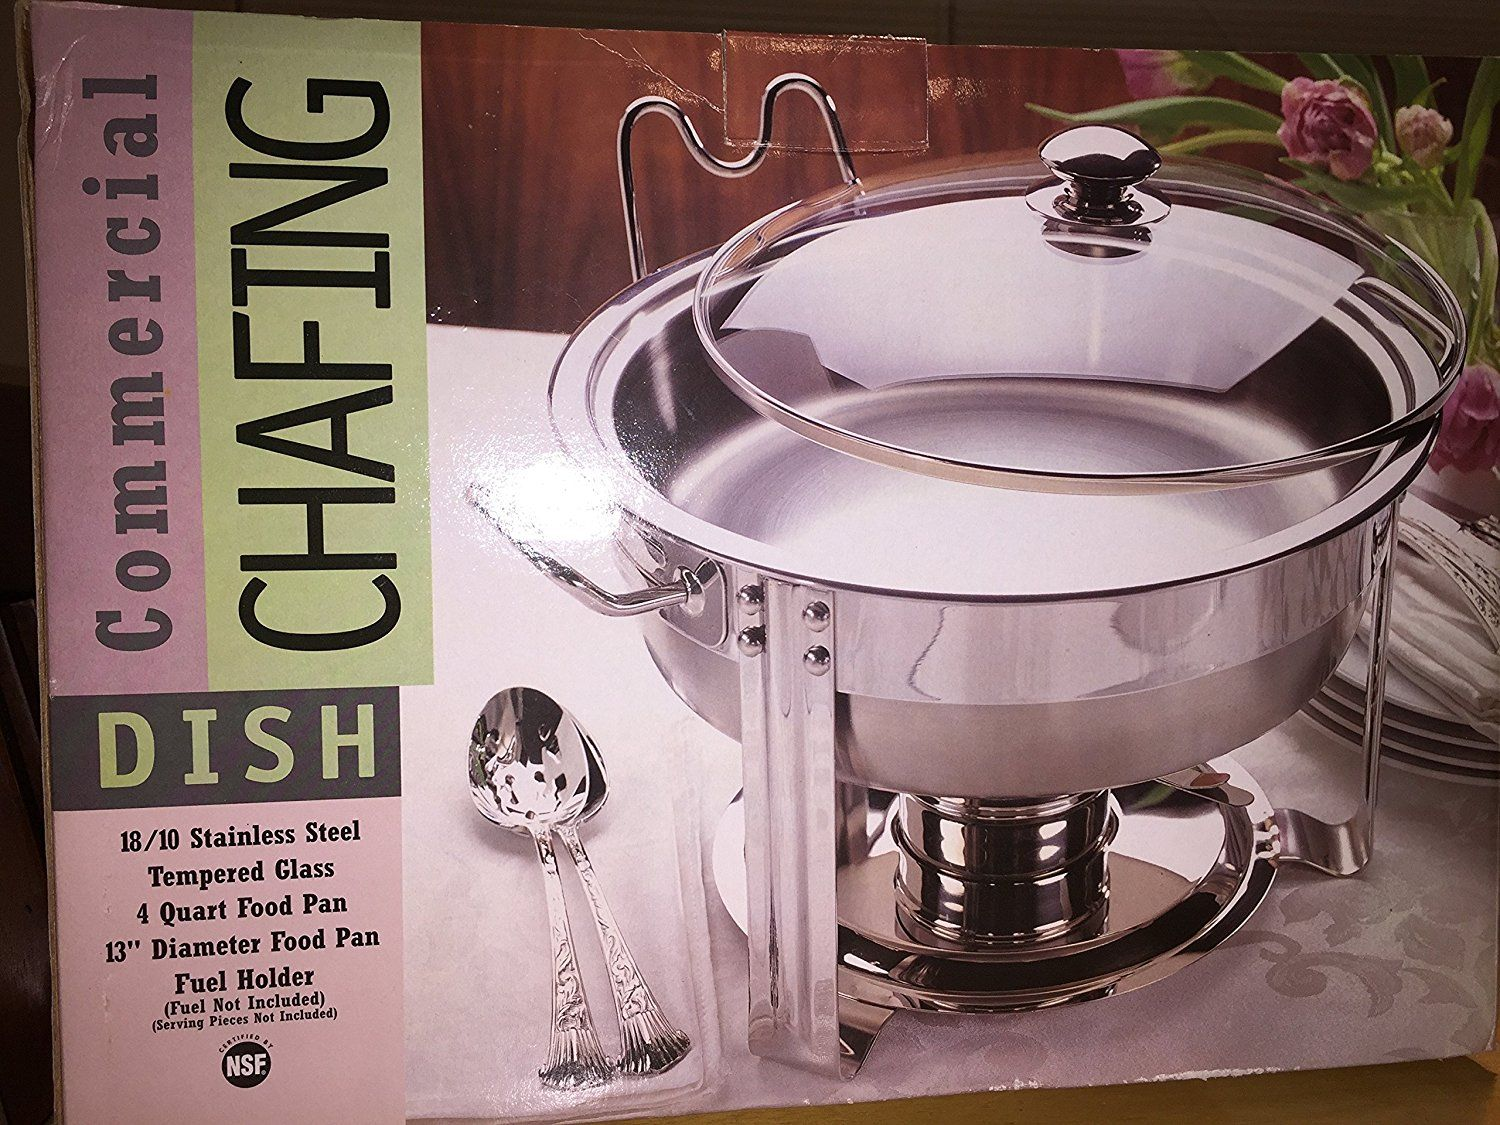 Seville Classics 4 Quart Stainless Steel Chafing Dish >> You can get more details here : Specialty Cookware